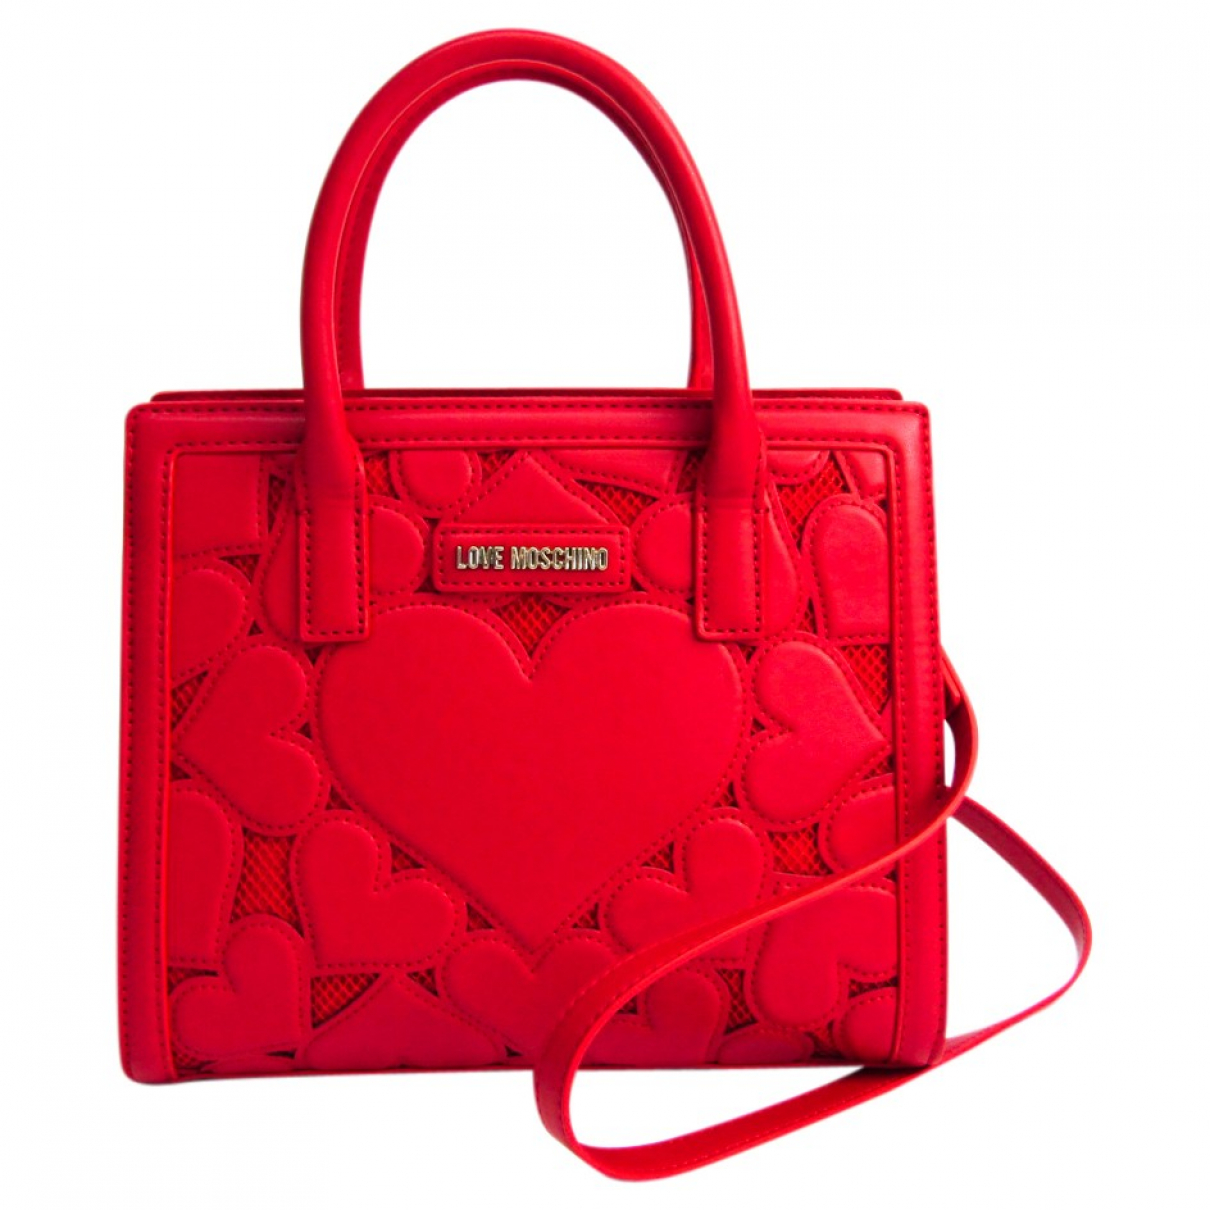 Moschino N Red Leather handbag for Women N